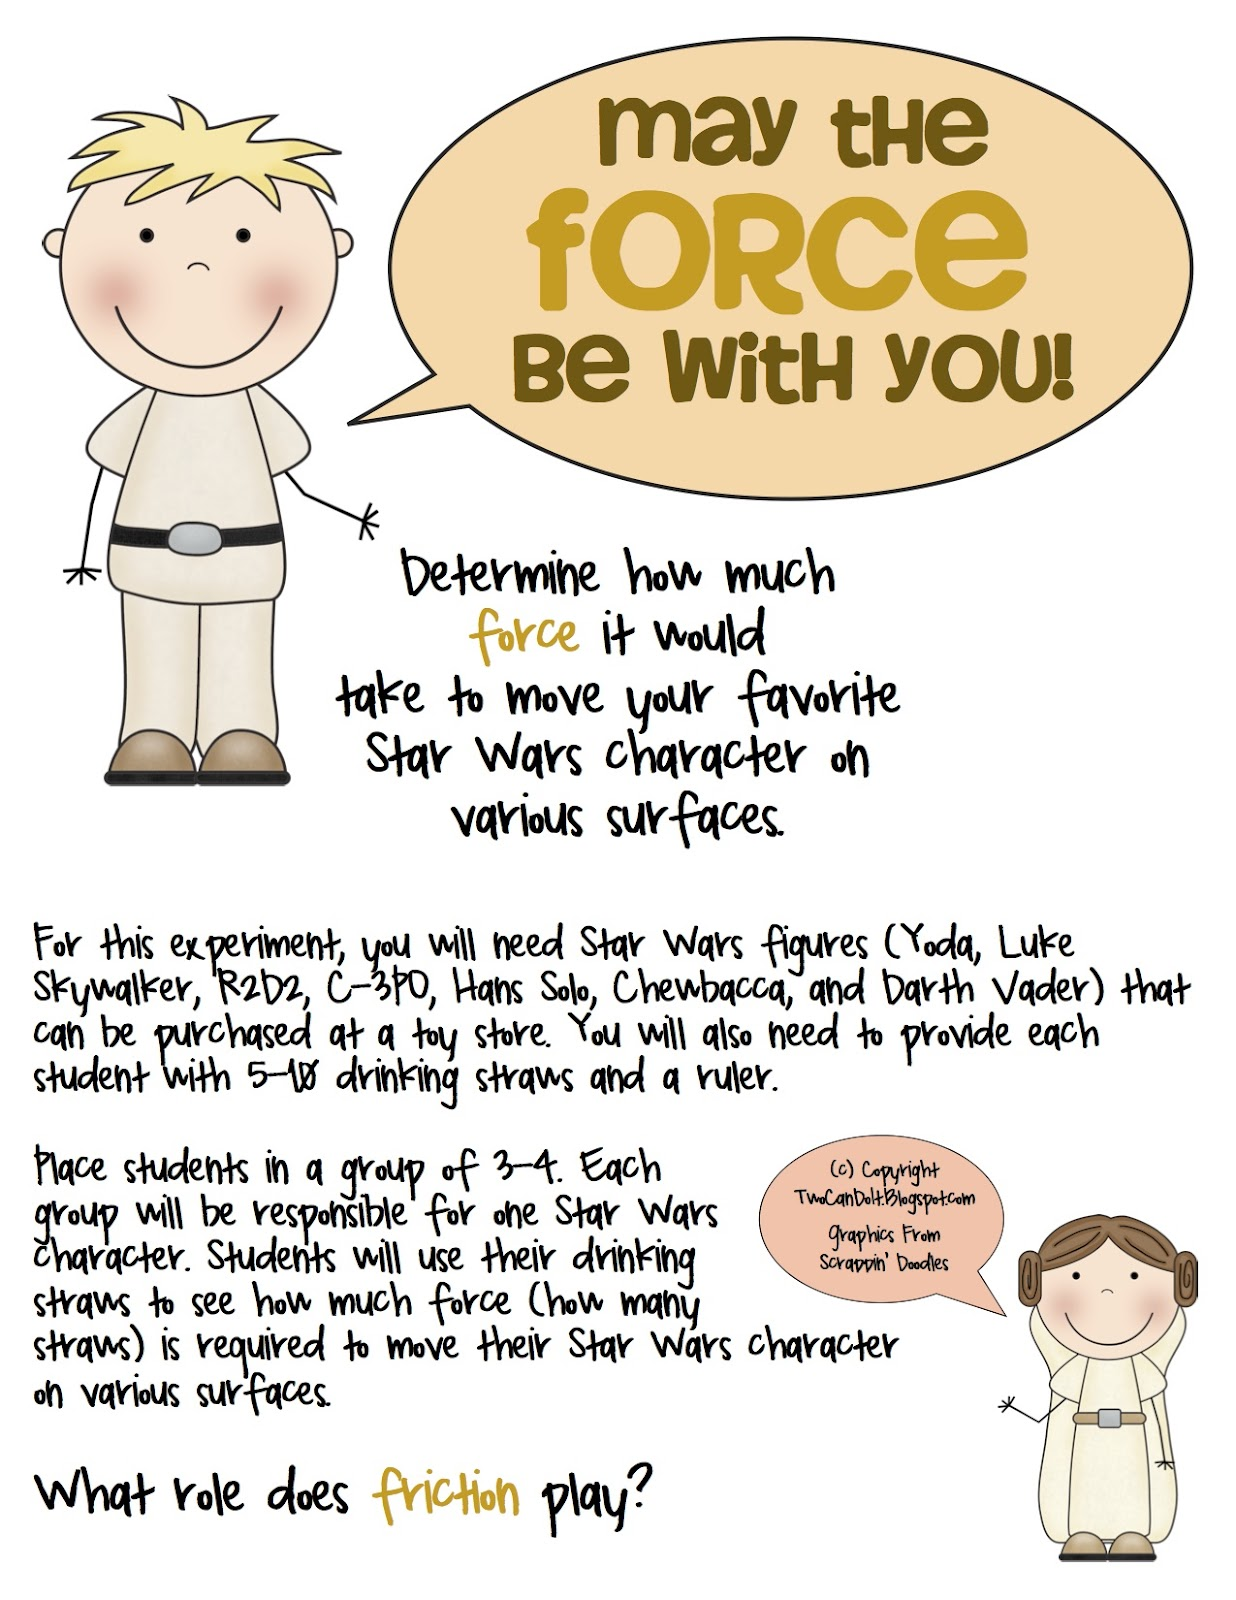 Two Can Do It Forces And Friction Star Wars Edition